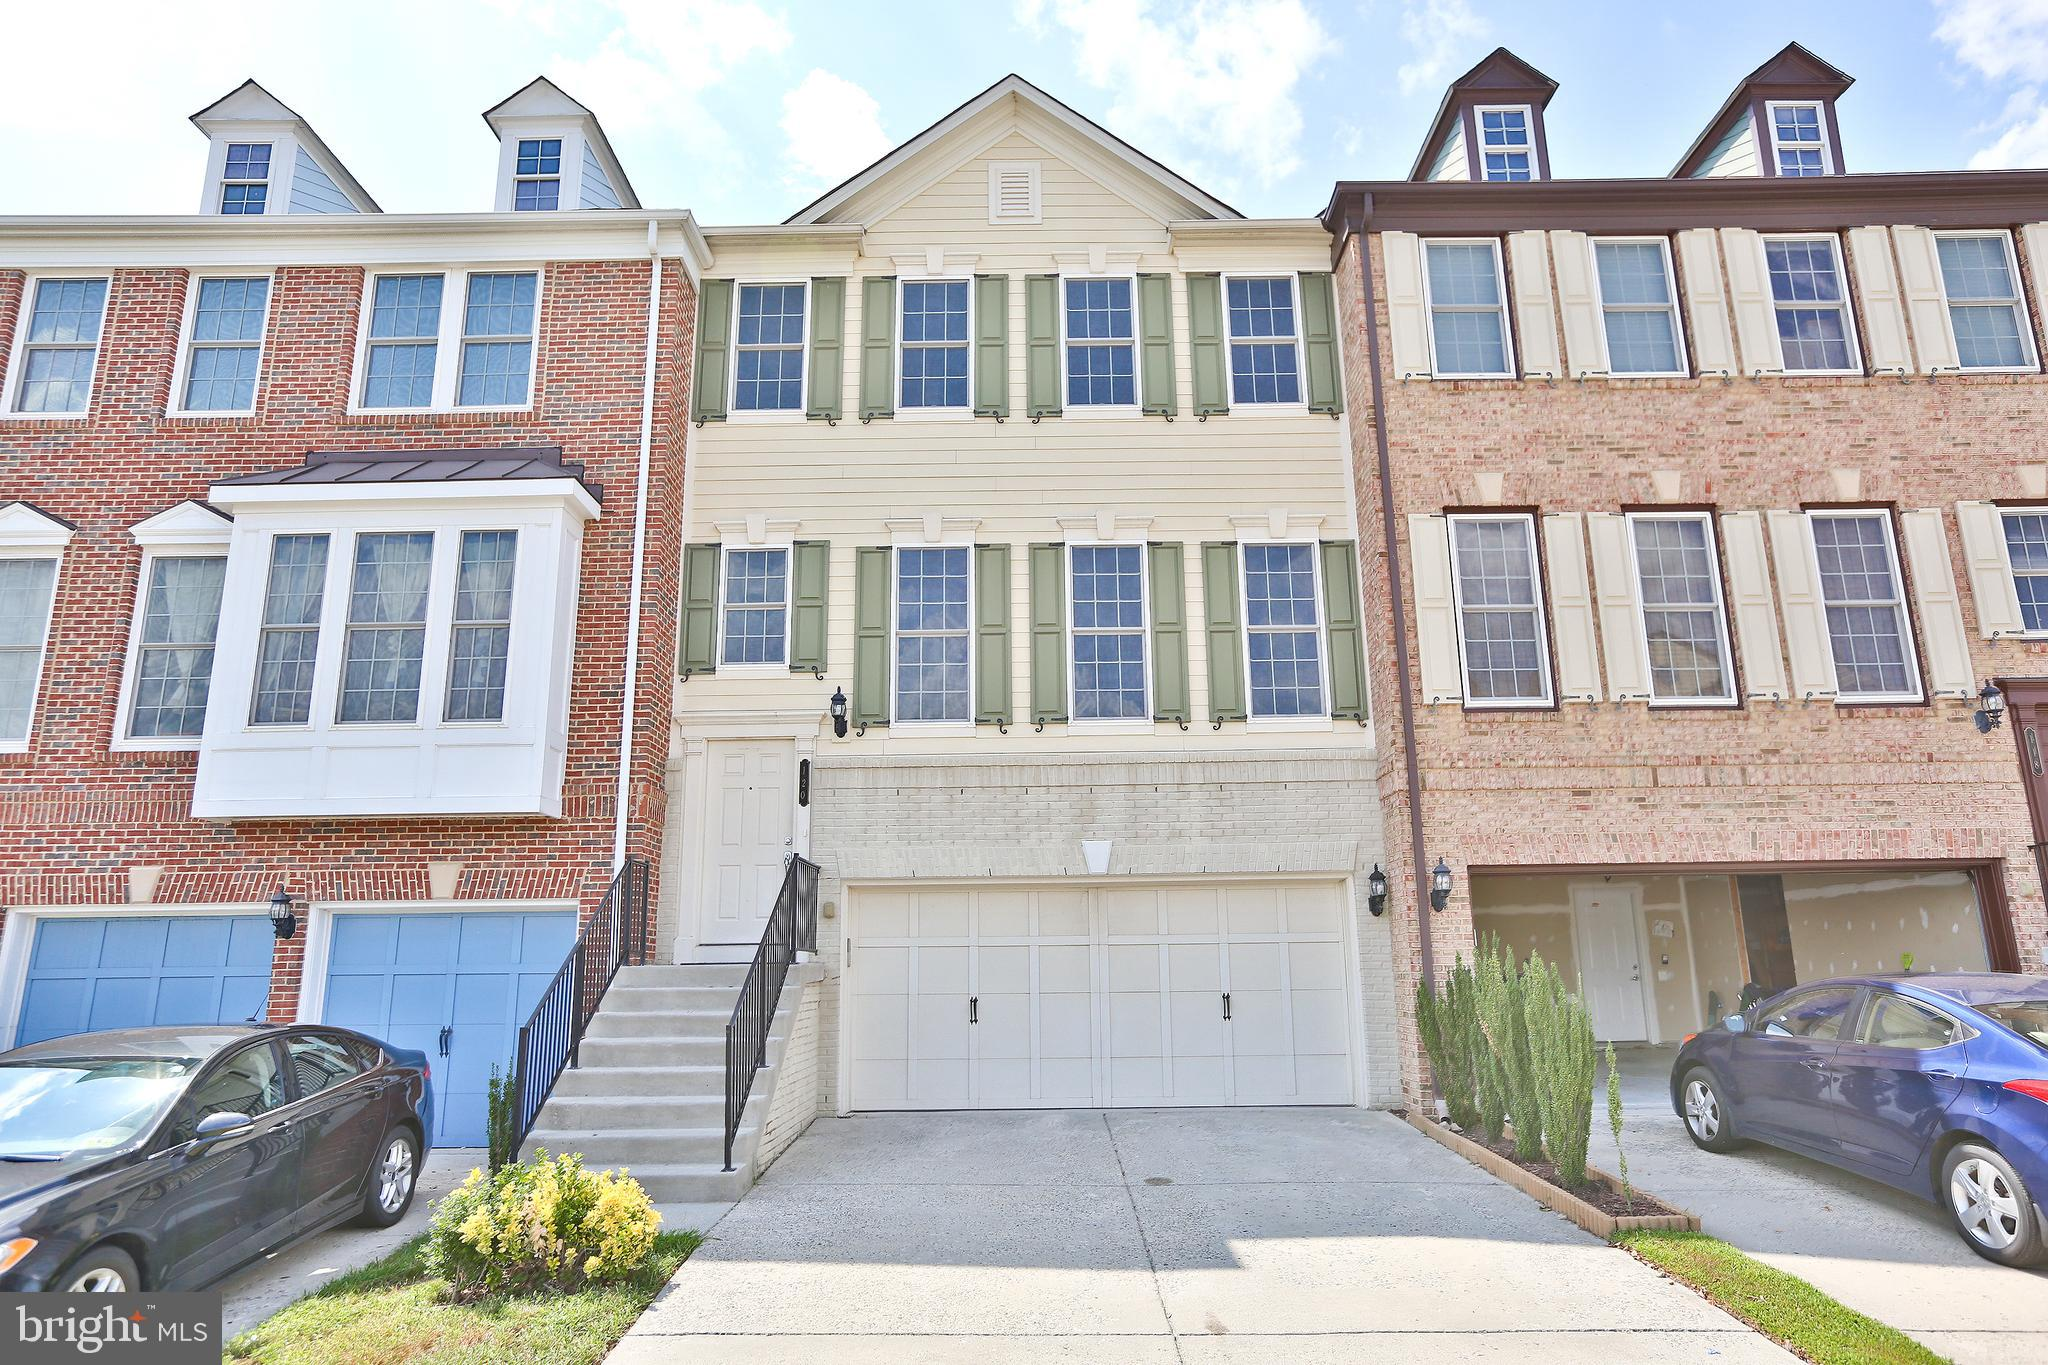 Well maintained townhouse in Oaklawn. 3 level bump out will give you extra living area. Front loadin